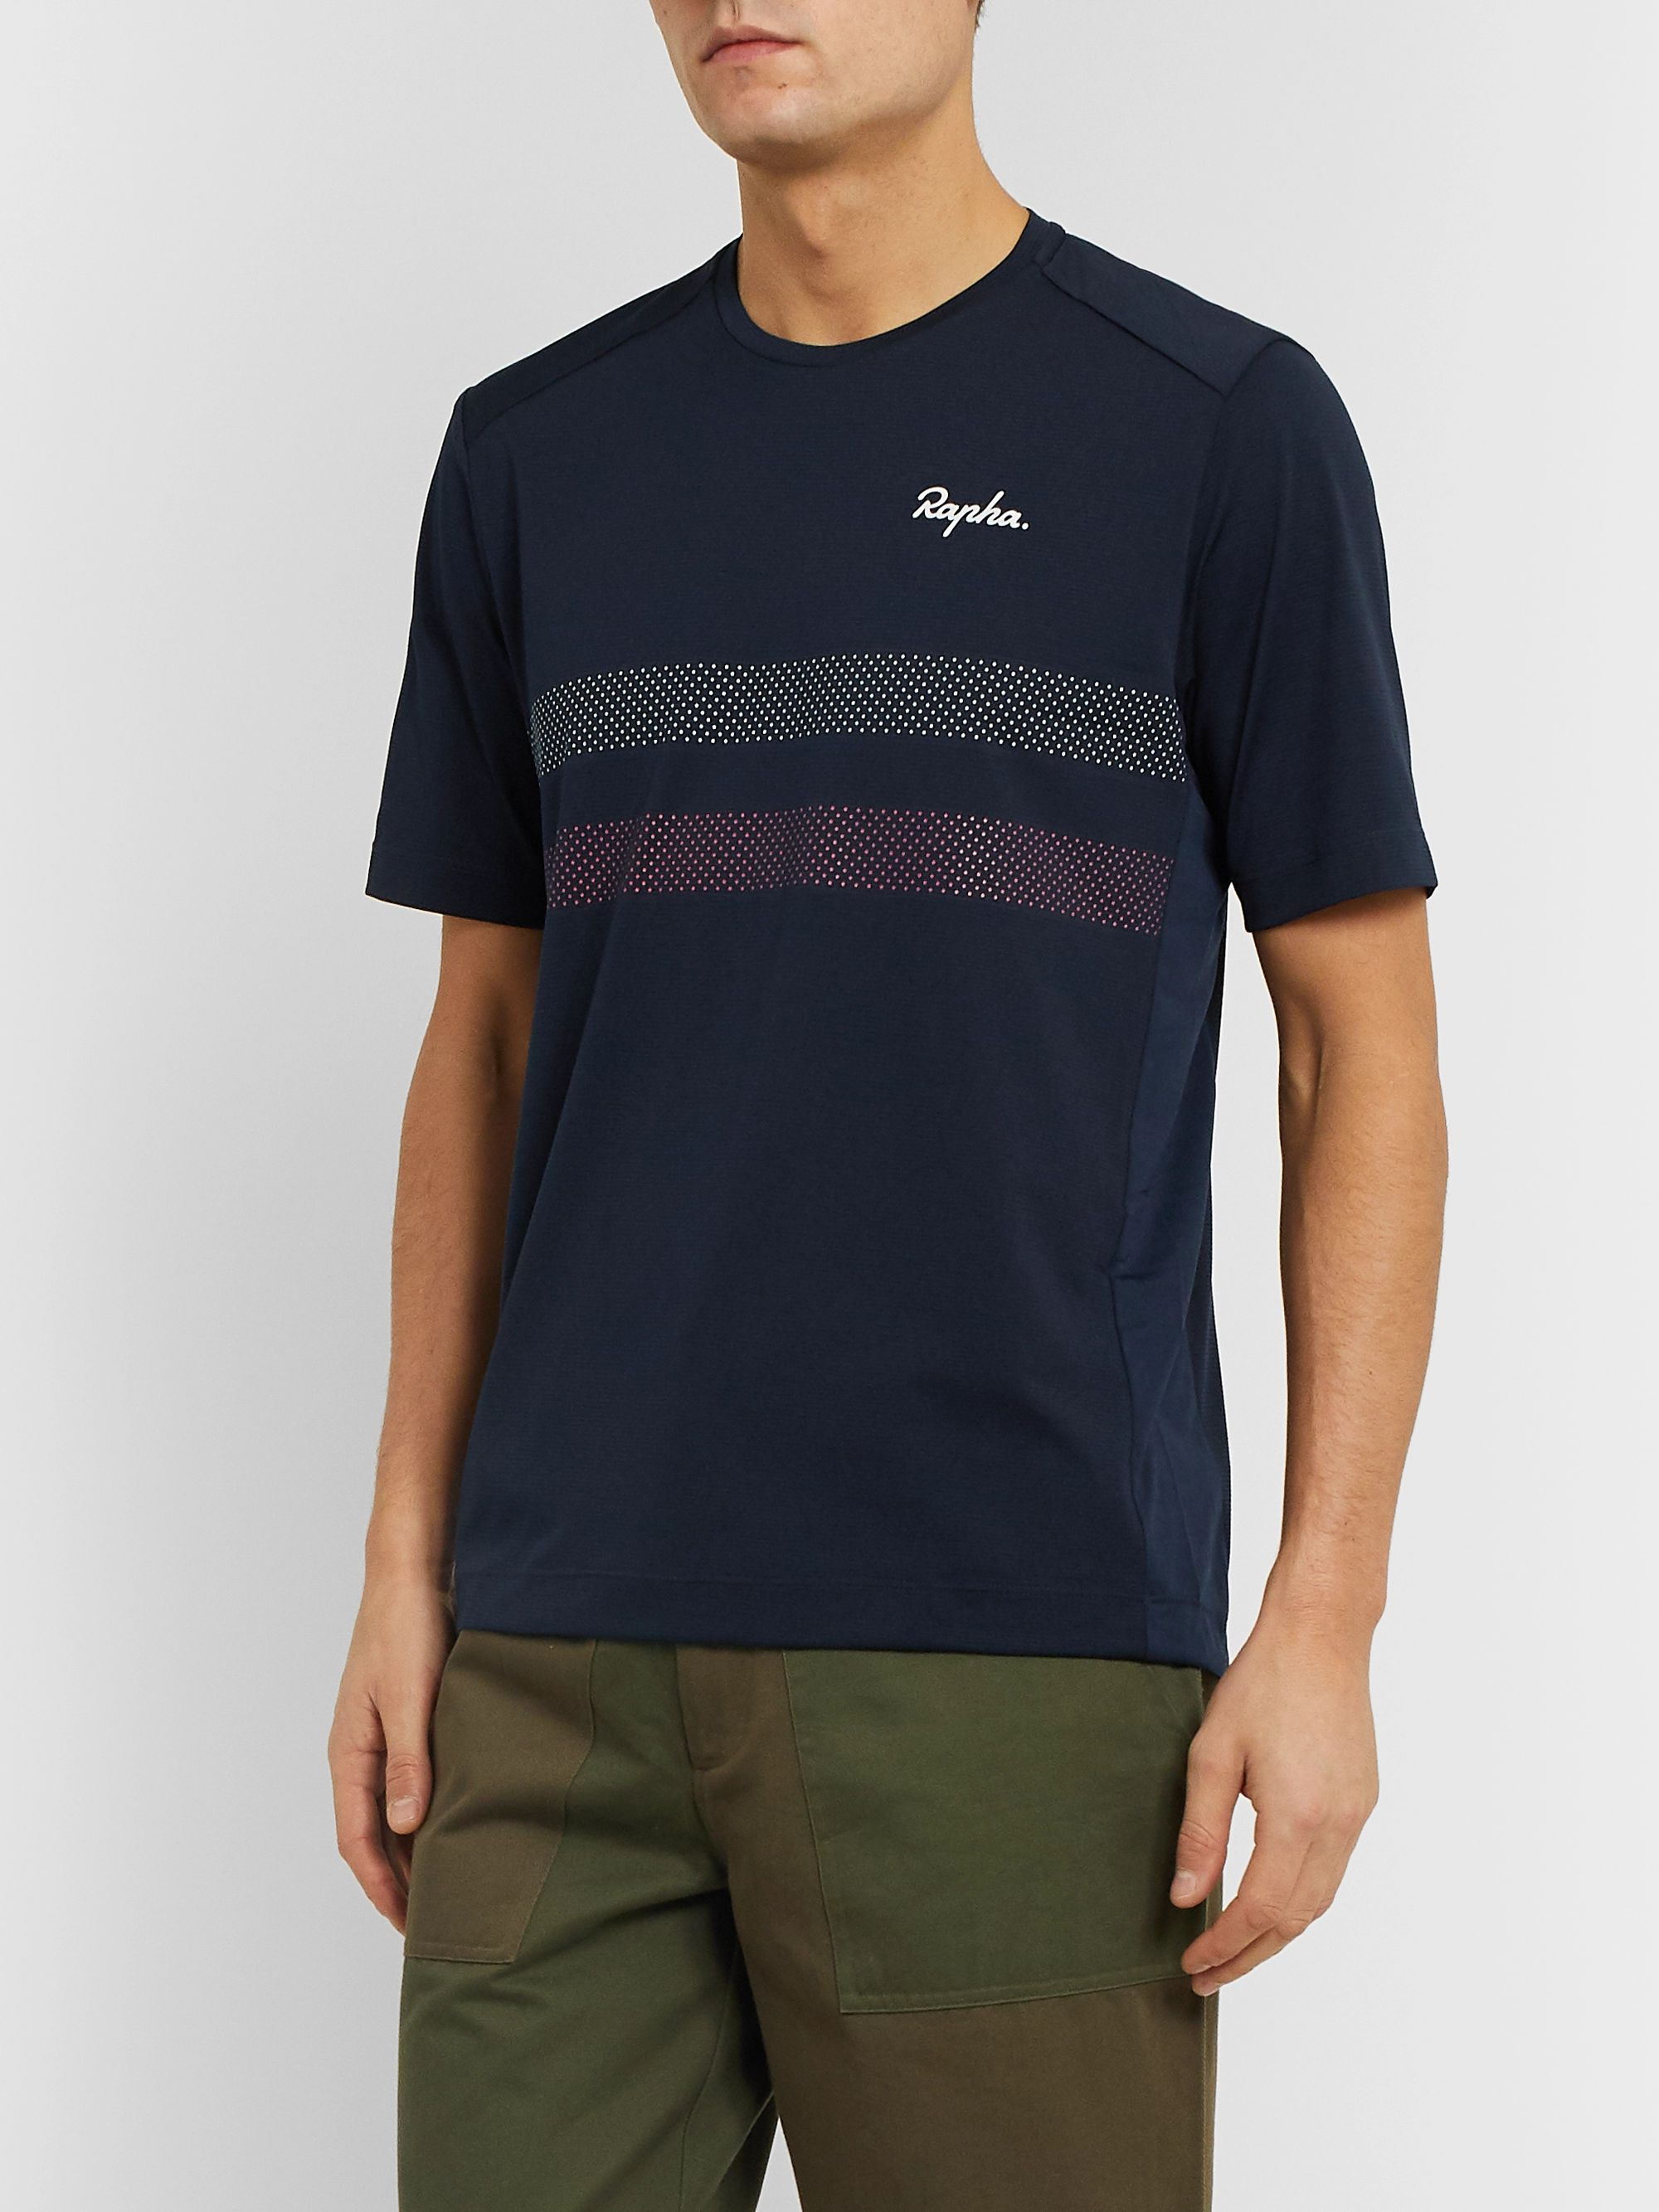 Rapha Explore Technical Striped Stretch-Mesh T-Shirt